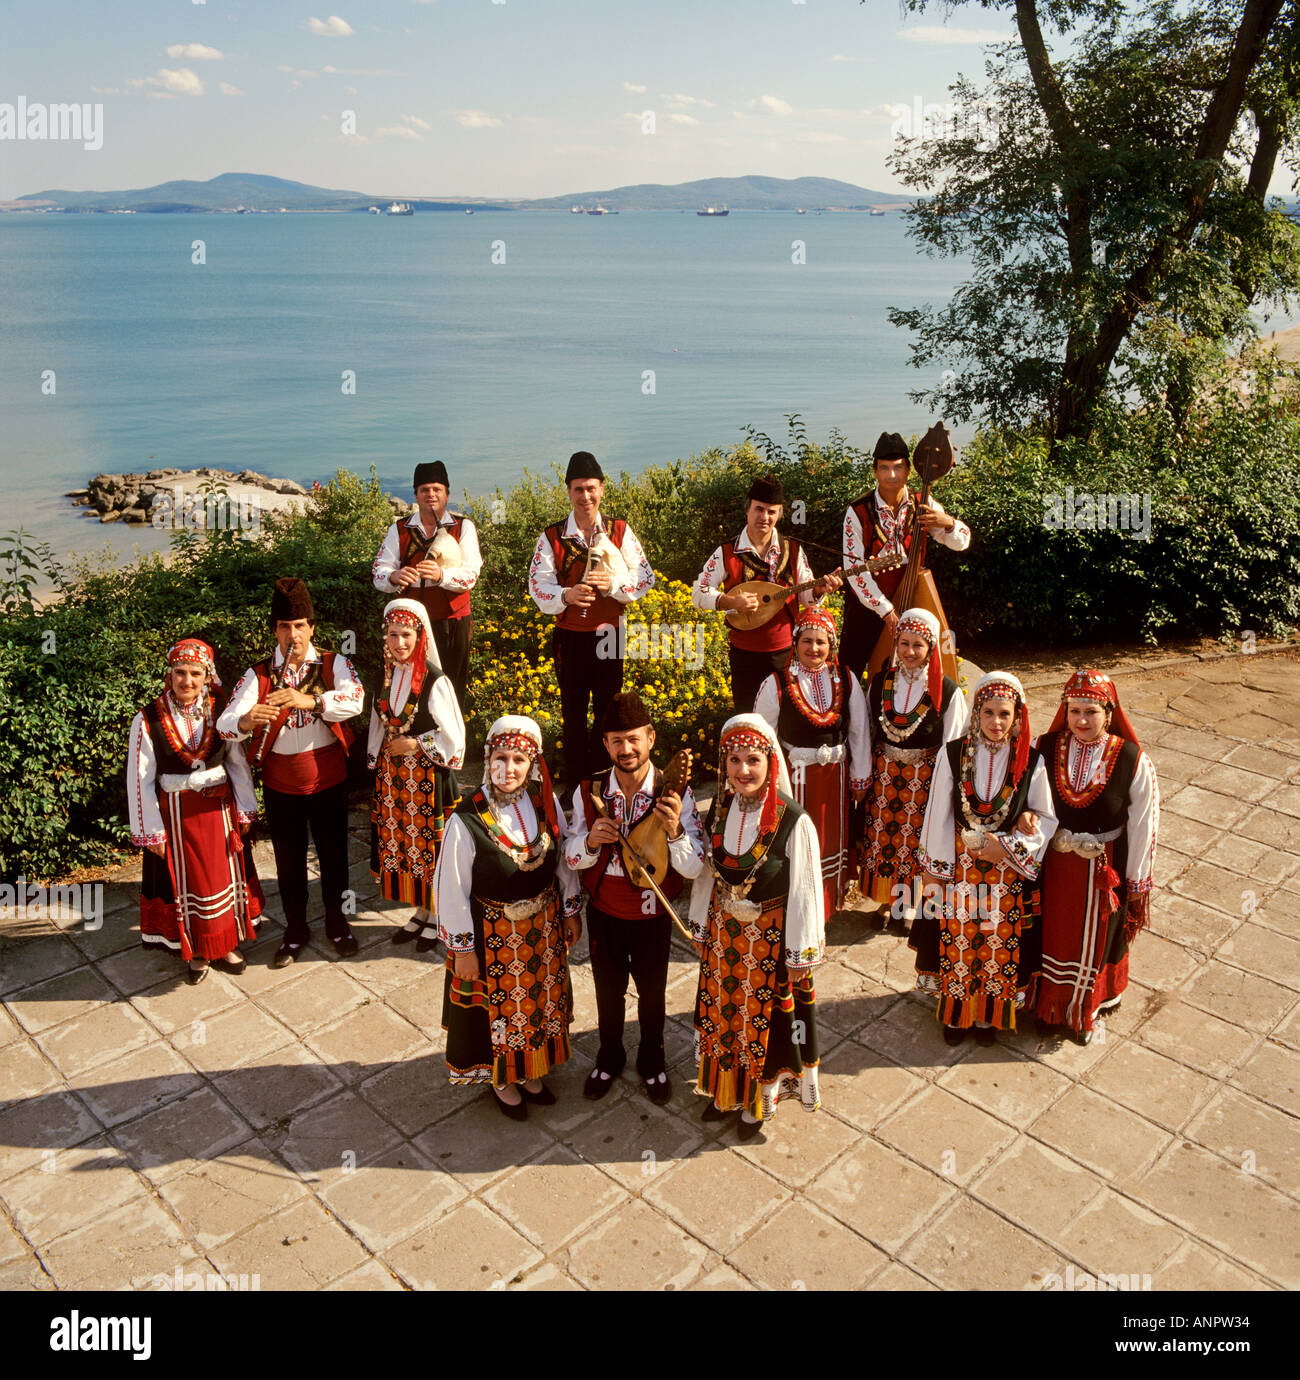 Russian dance and music troupe in traditional folk costume outside in Burgas Bulgaria coastline setting - Stock Image